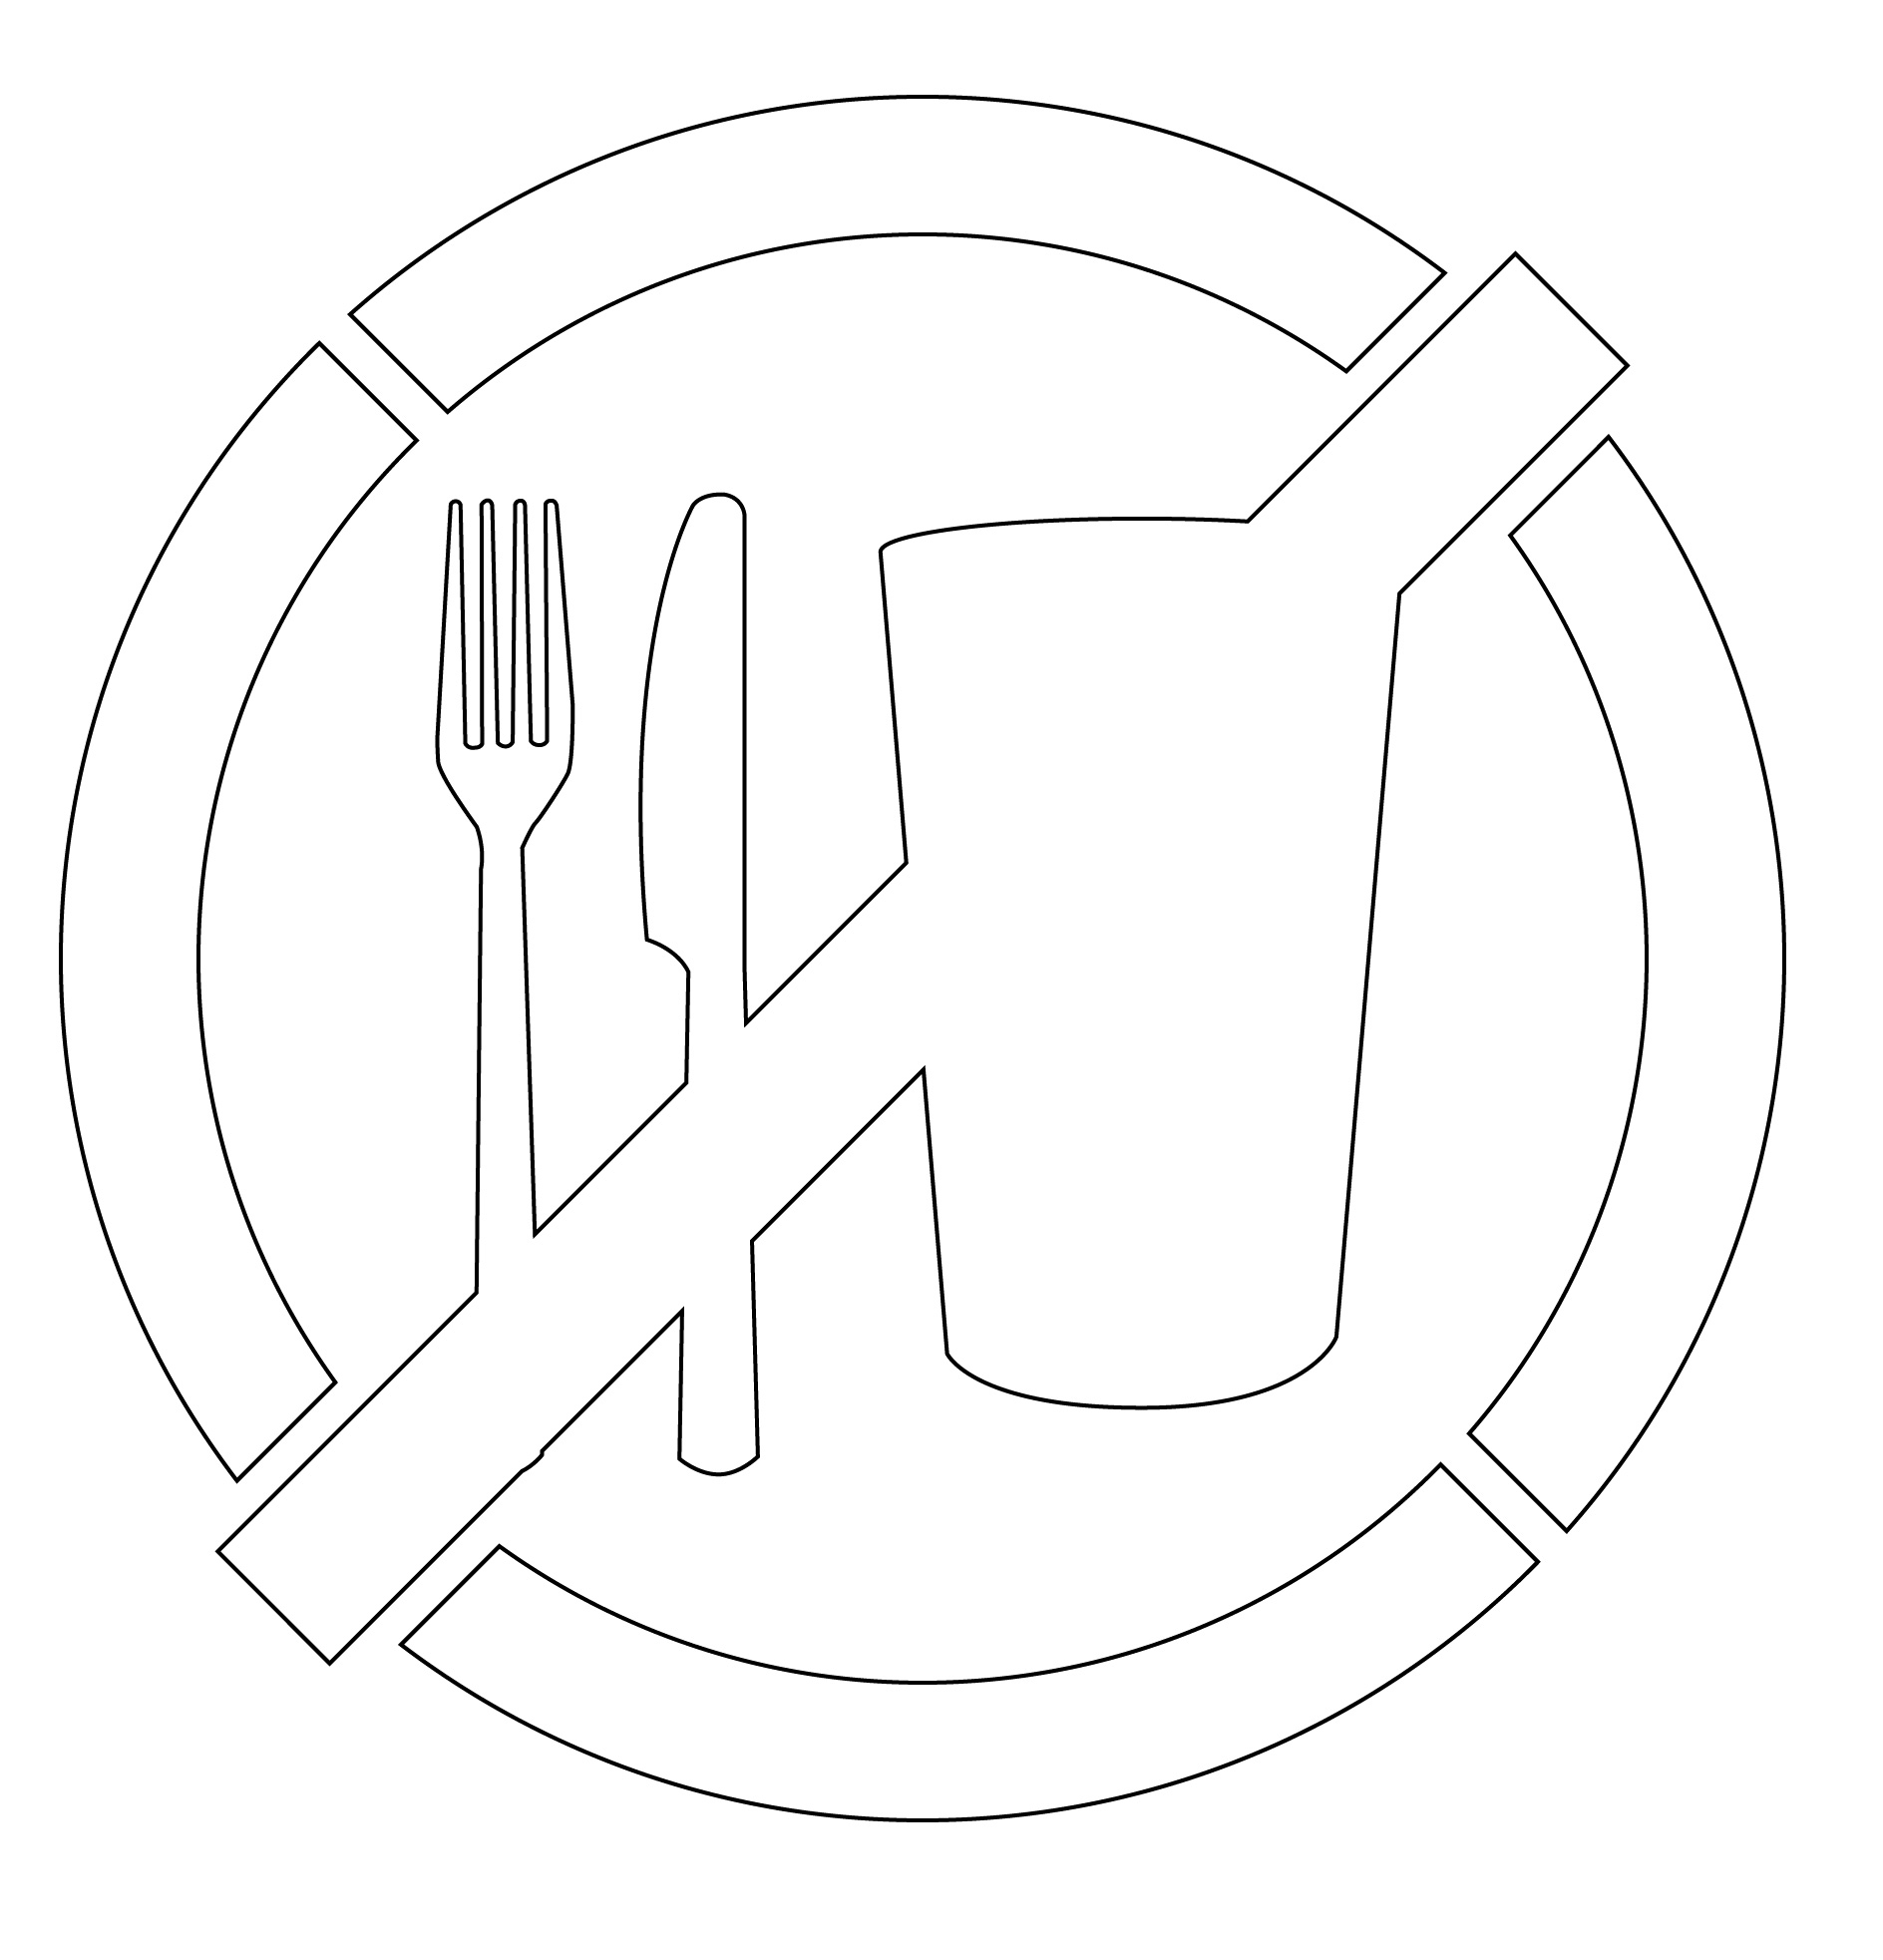 no-foodordrink-symbol2.jpg